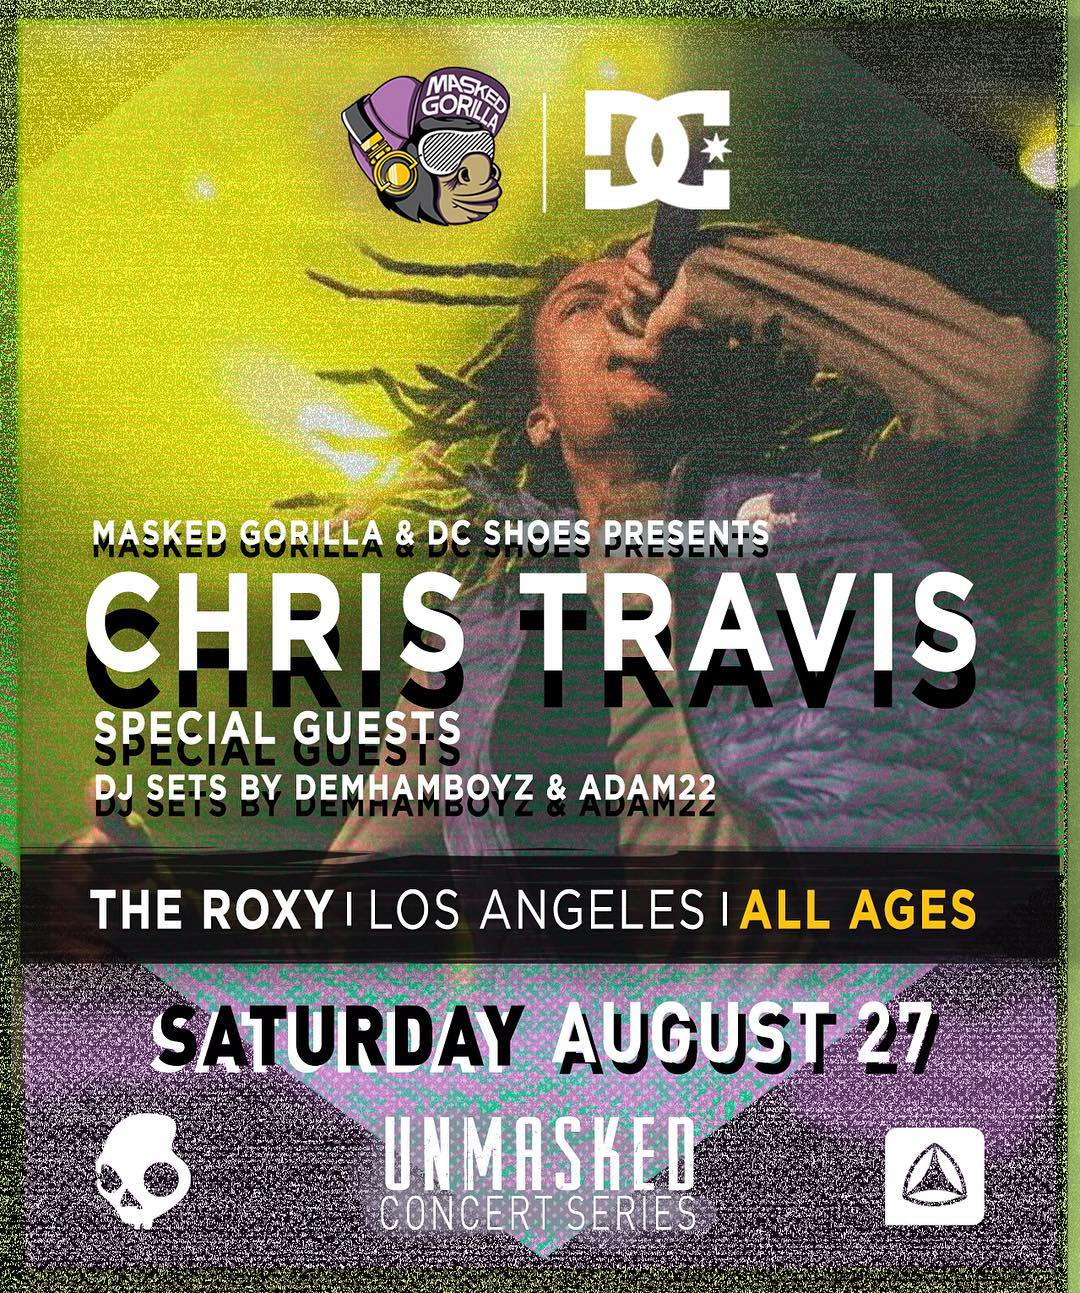 The DC x @MaskedGorilla @UNMASKEDla concert series on continues this month with @KenshinTravis on Saturday, August 27th at The Roxy in Los Angeles, CA. You're not going to want to miss this one! You can buy tickets now at: UNMASKED.la. #DCShoes